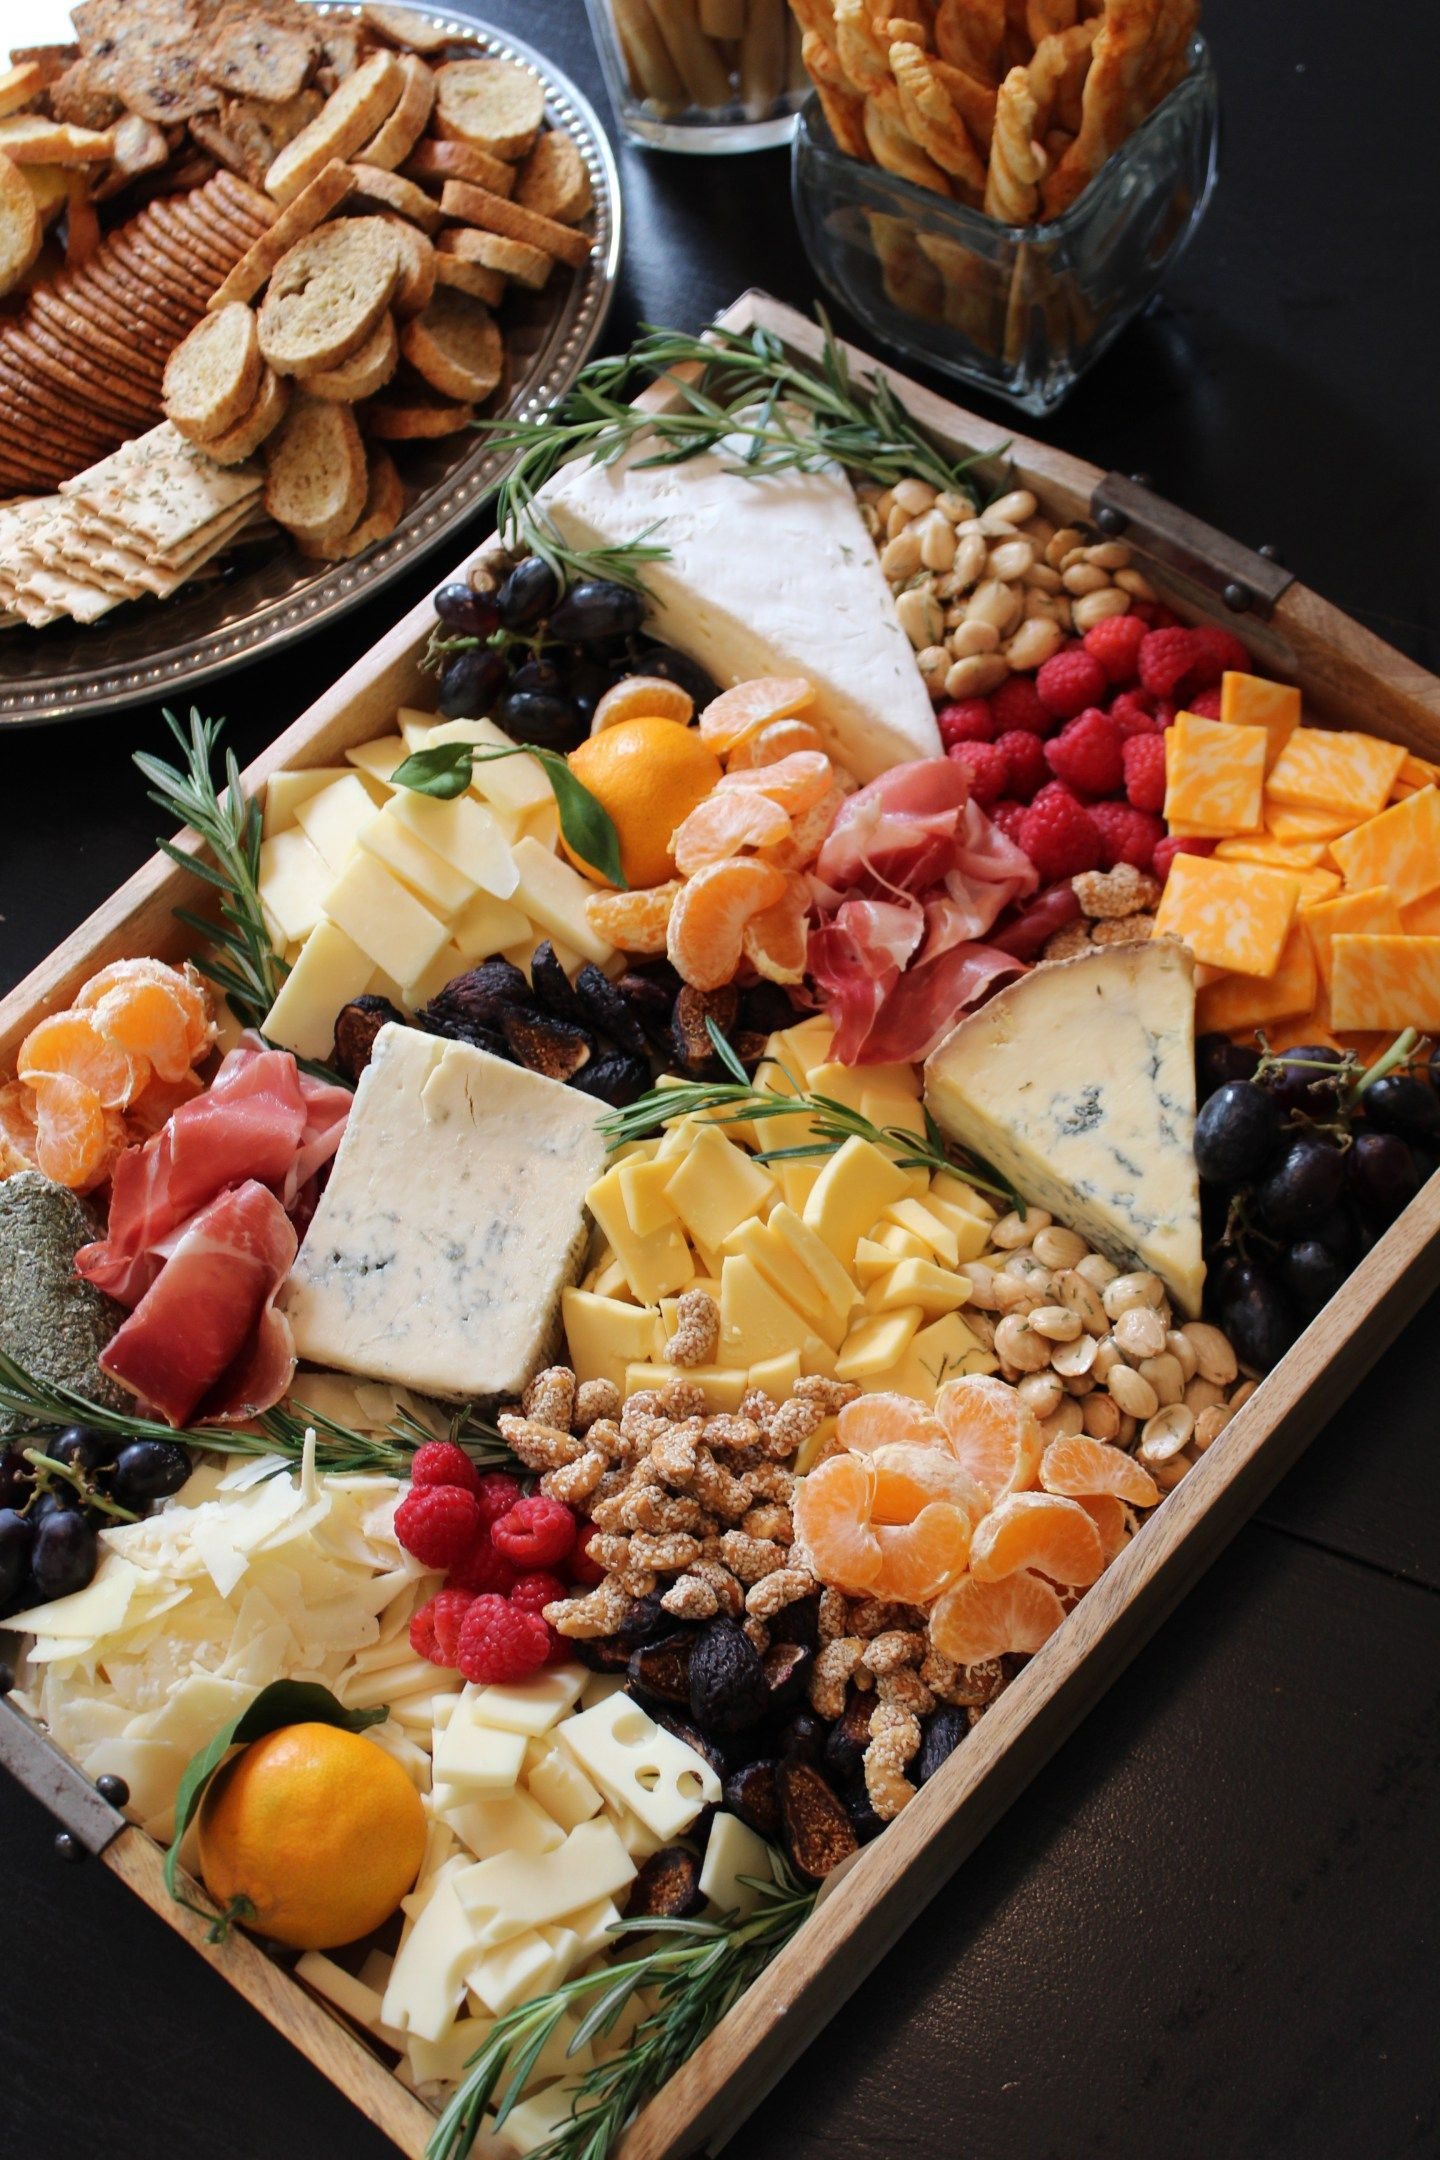 Rustic Fall Cheese And Fruit Tray Thanksgiving Recipesthanksgiving Appetizersthanksgiving